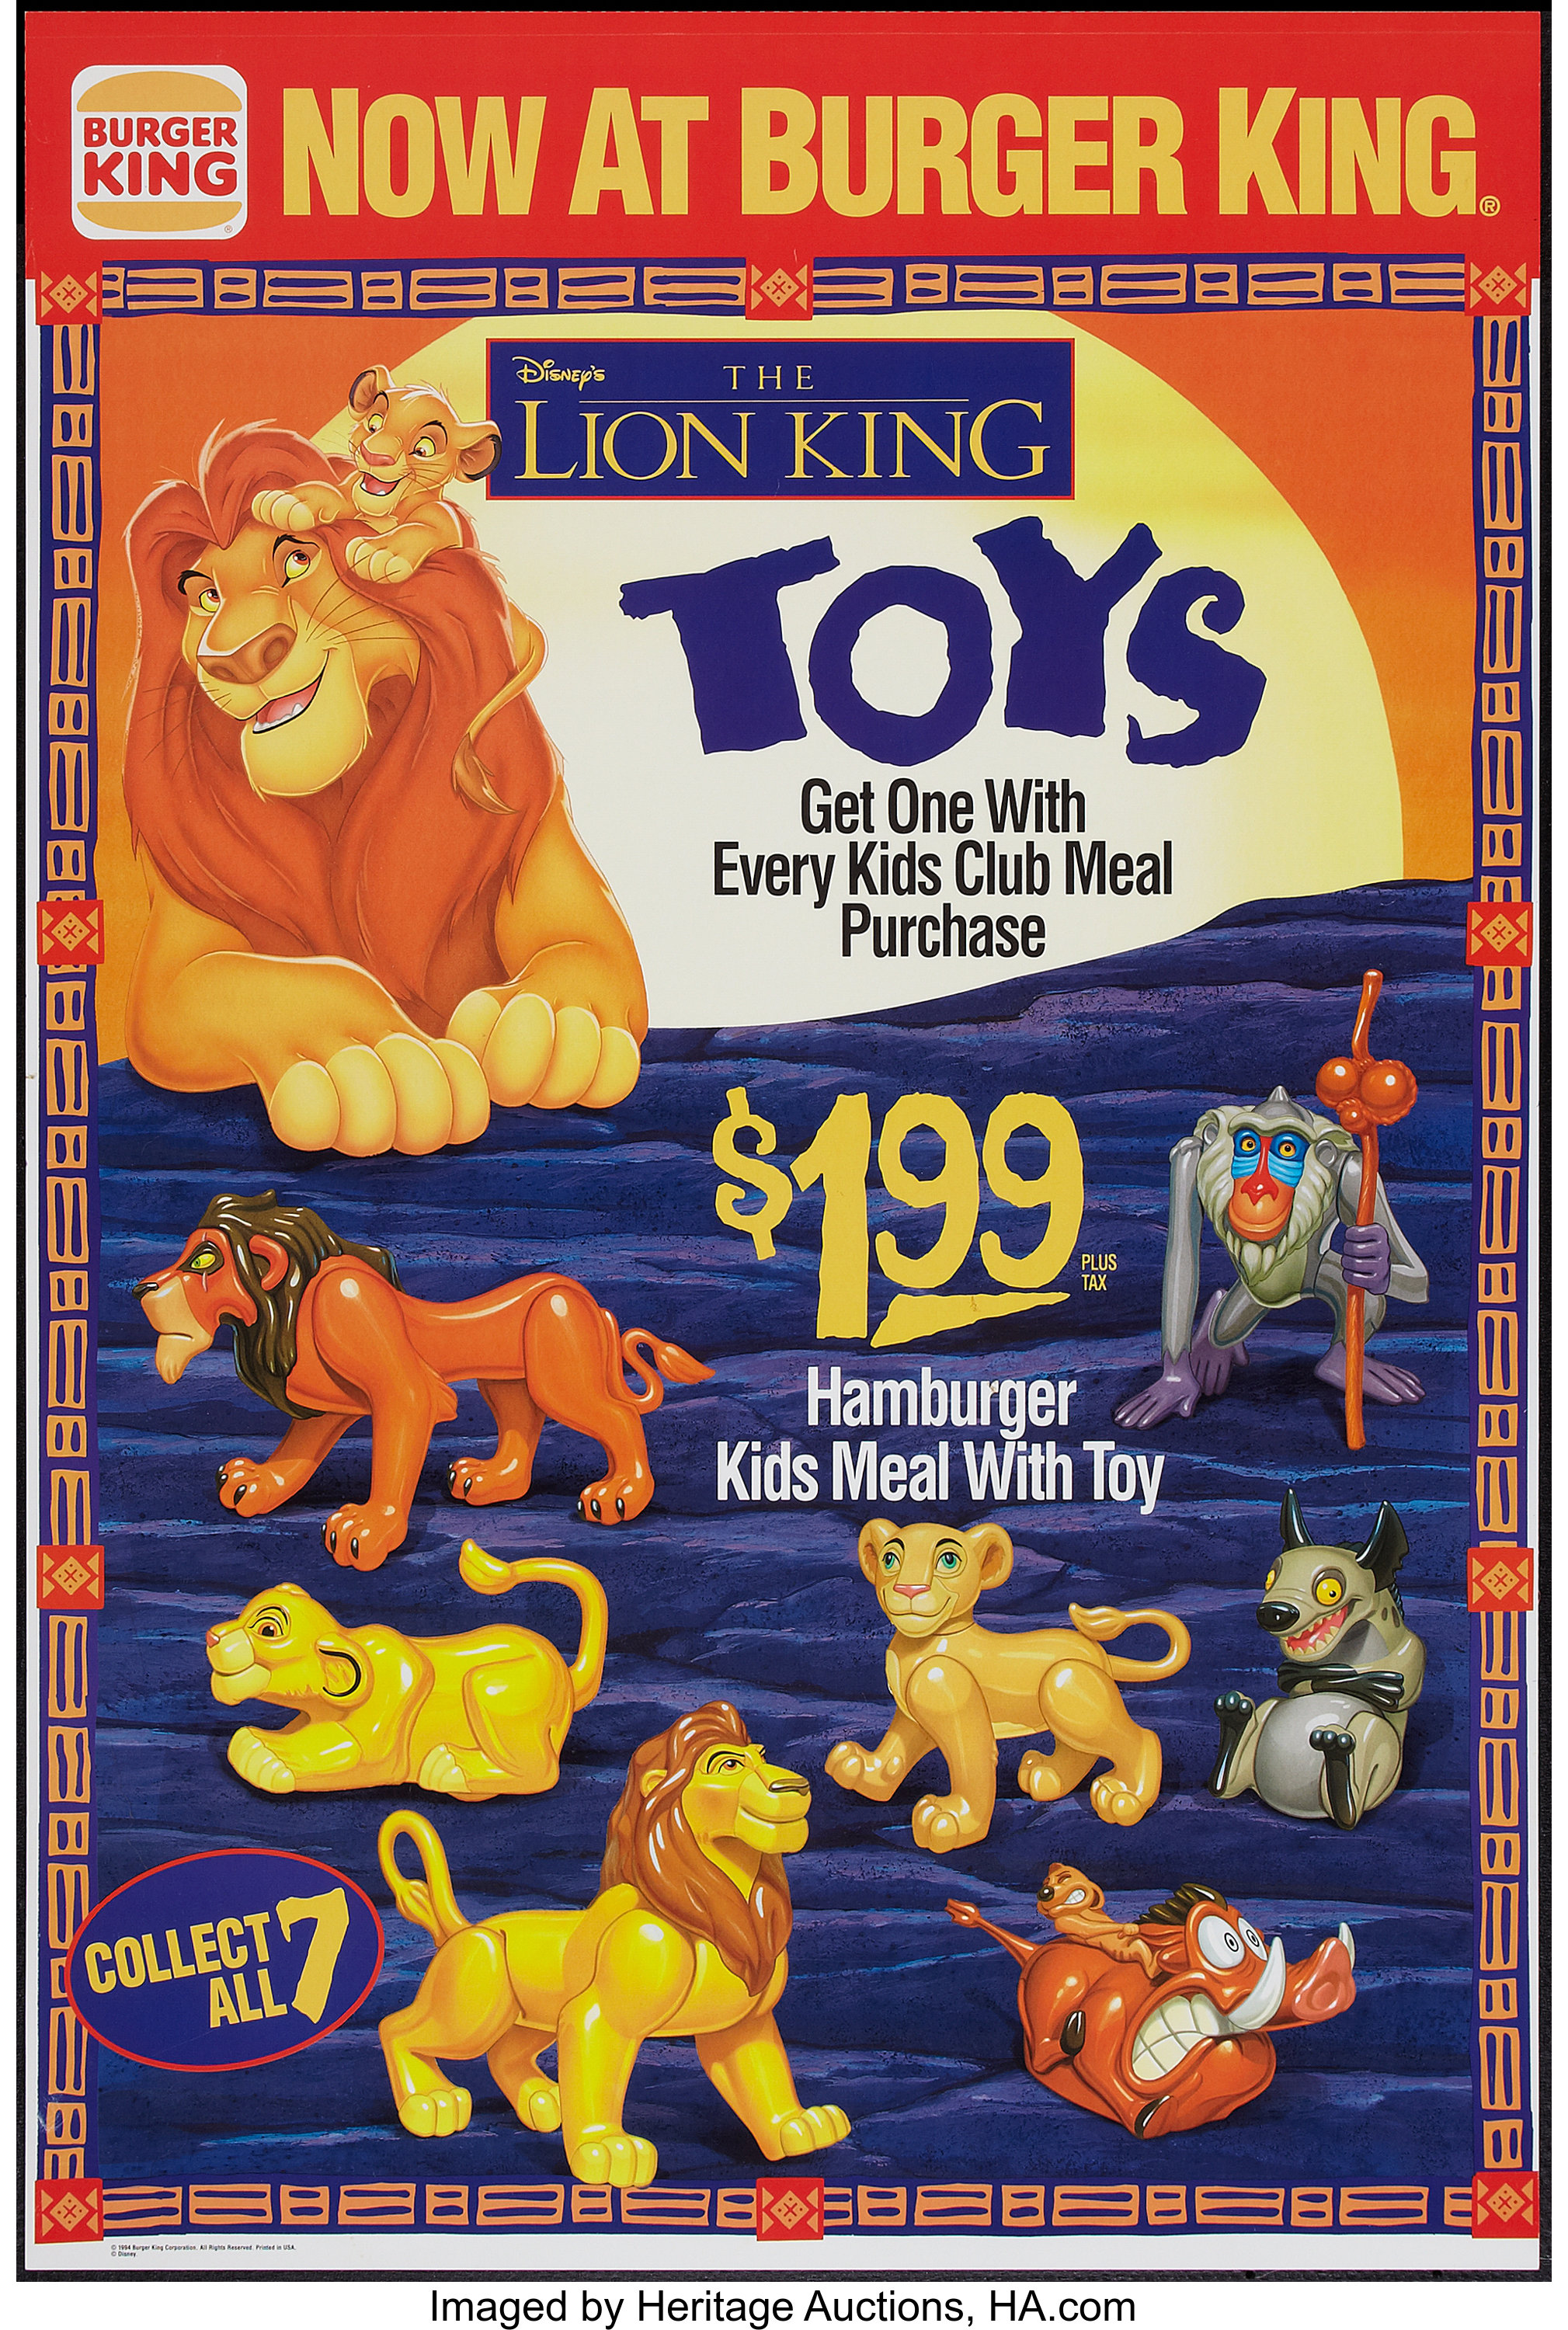 The Lion King Burger King 1994 Burger King Promotional Poster Lot 50294 Heritage Auctions